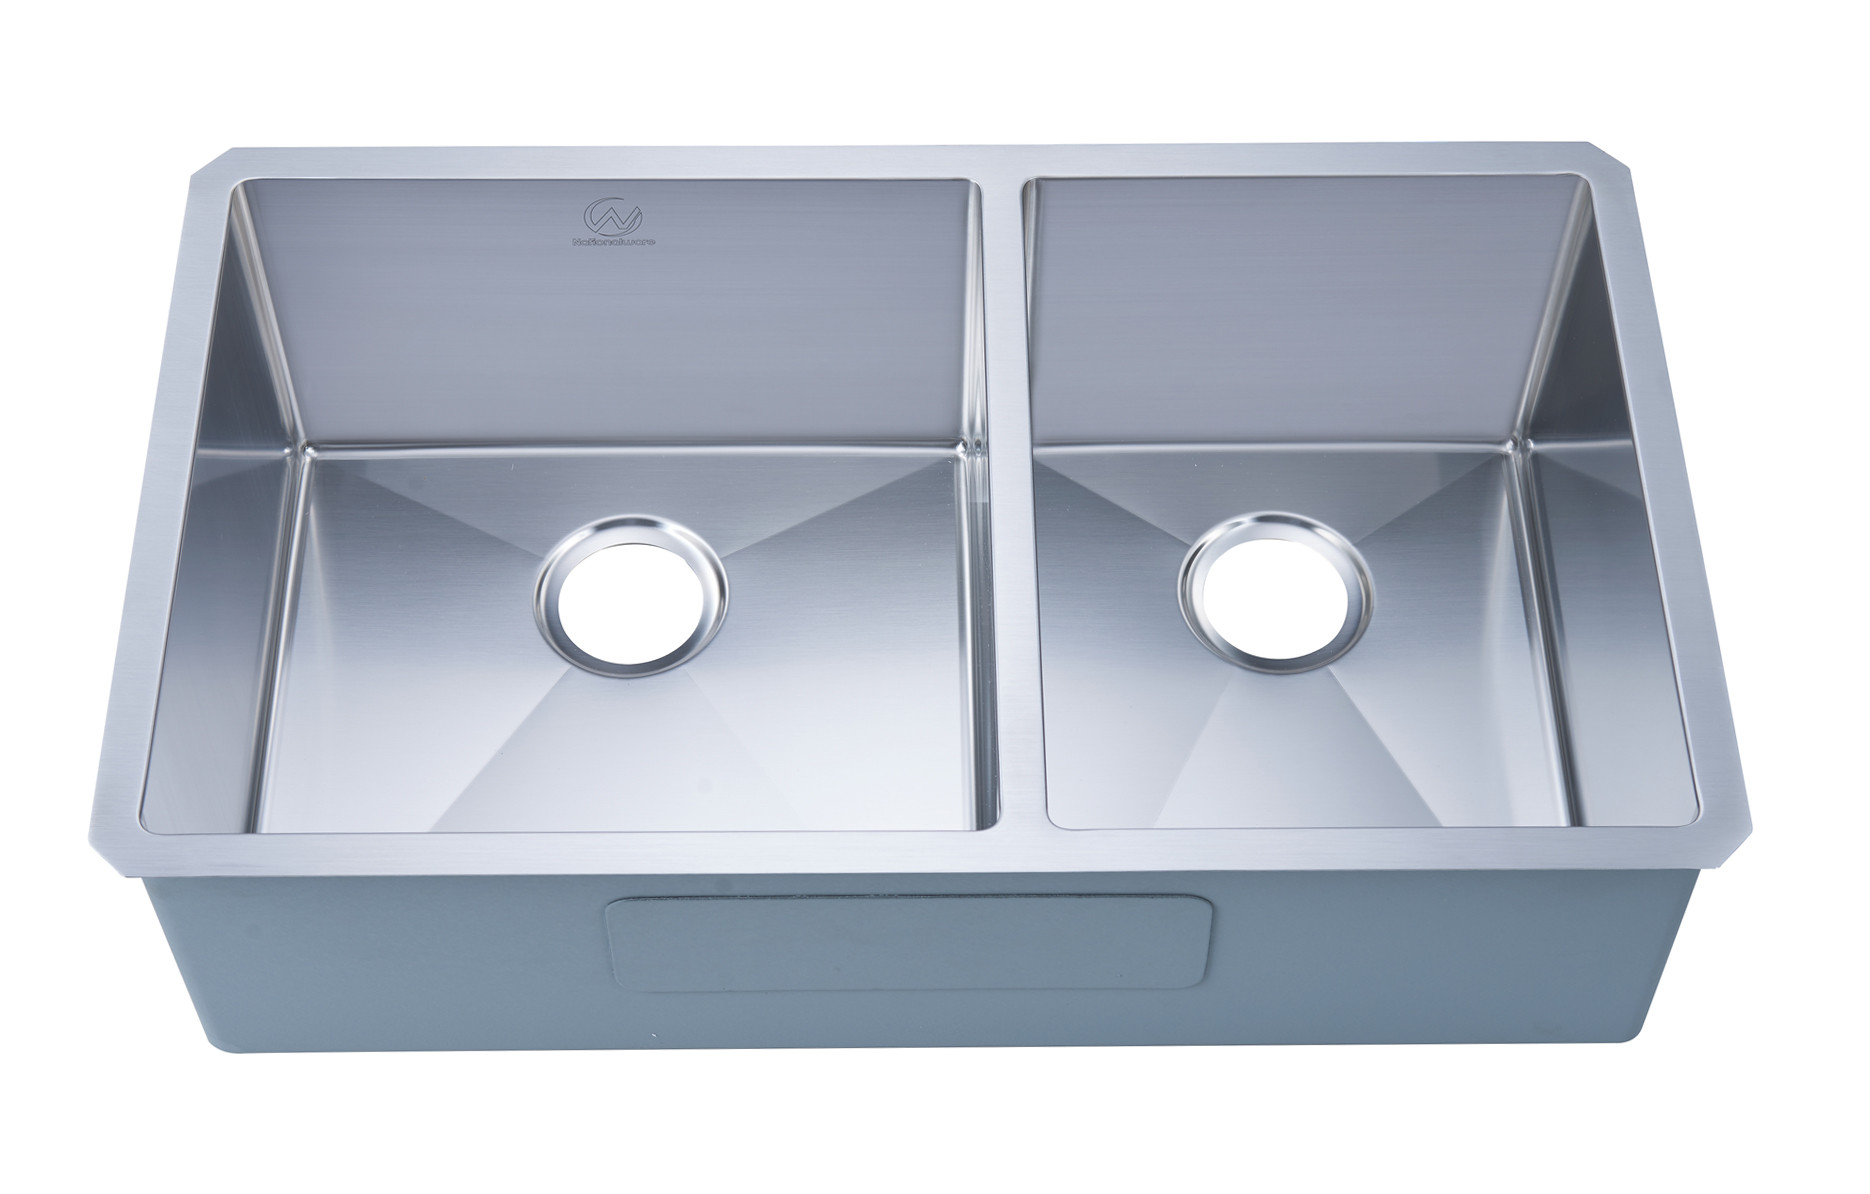 Stufurhome NW-3319D Undermount Stainless Steel 33 Inch Double Bowl Kitchen Sink